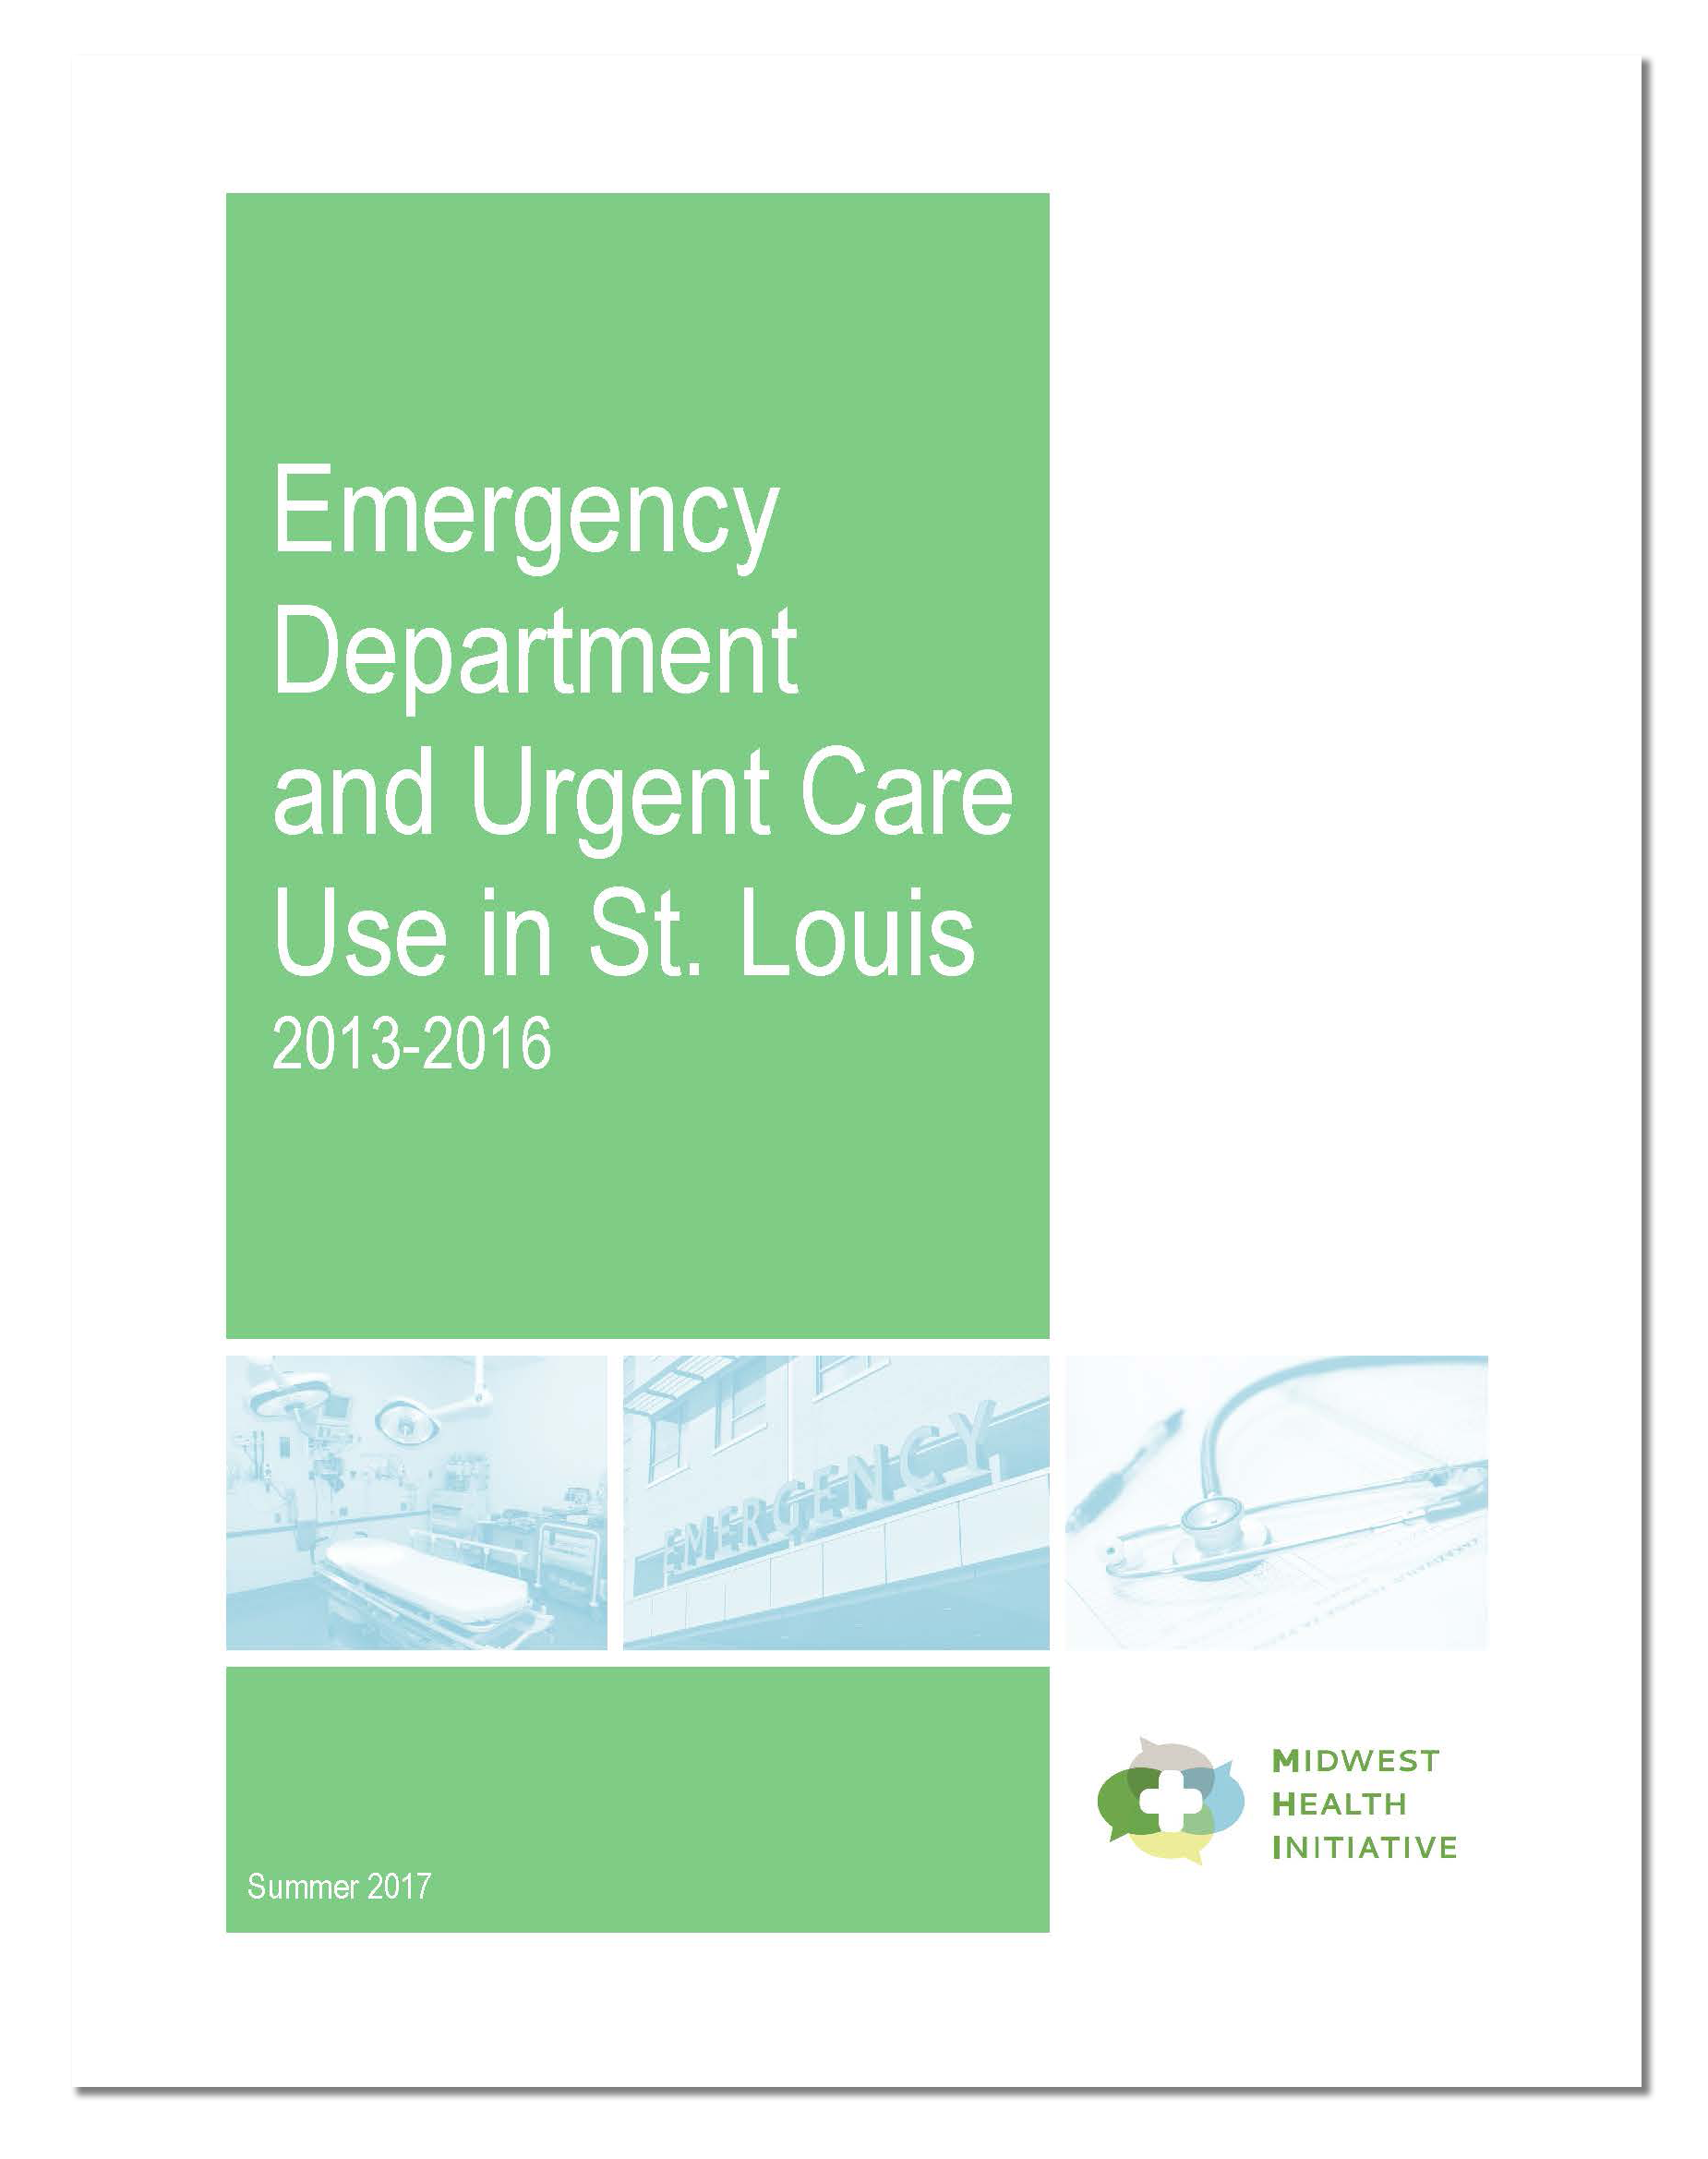 Emergency_Department_and_Urgent_Care_Use_in_St._Lous_Page_1.png